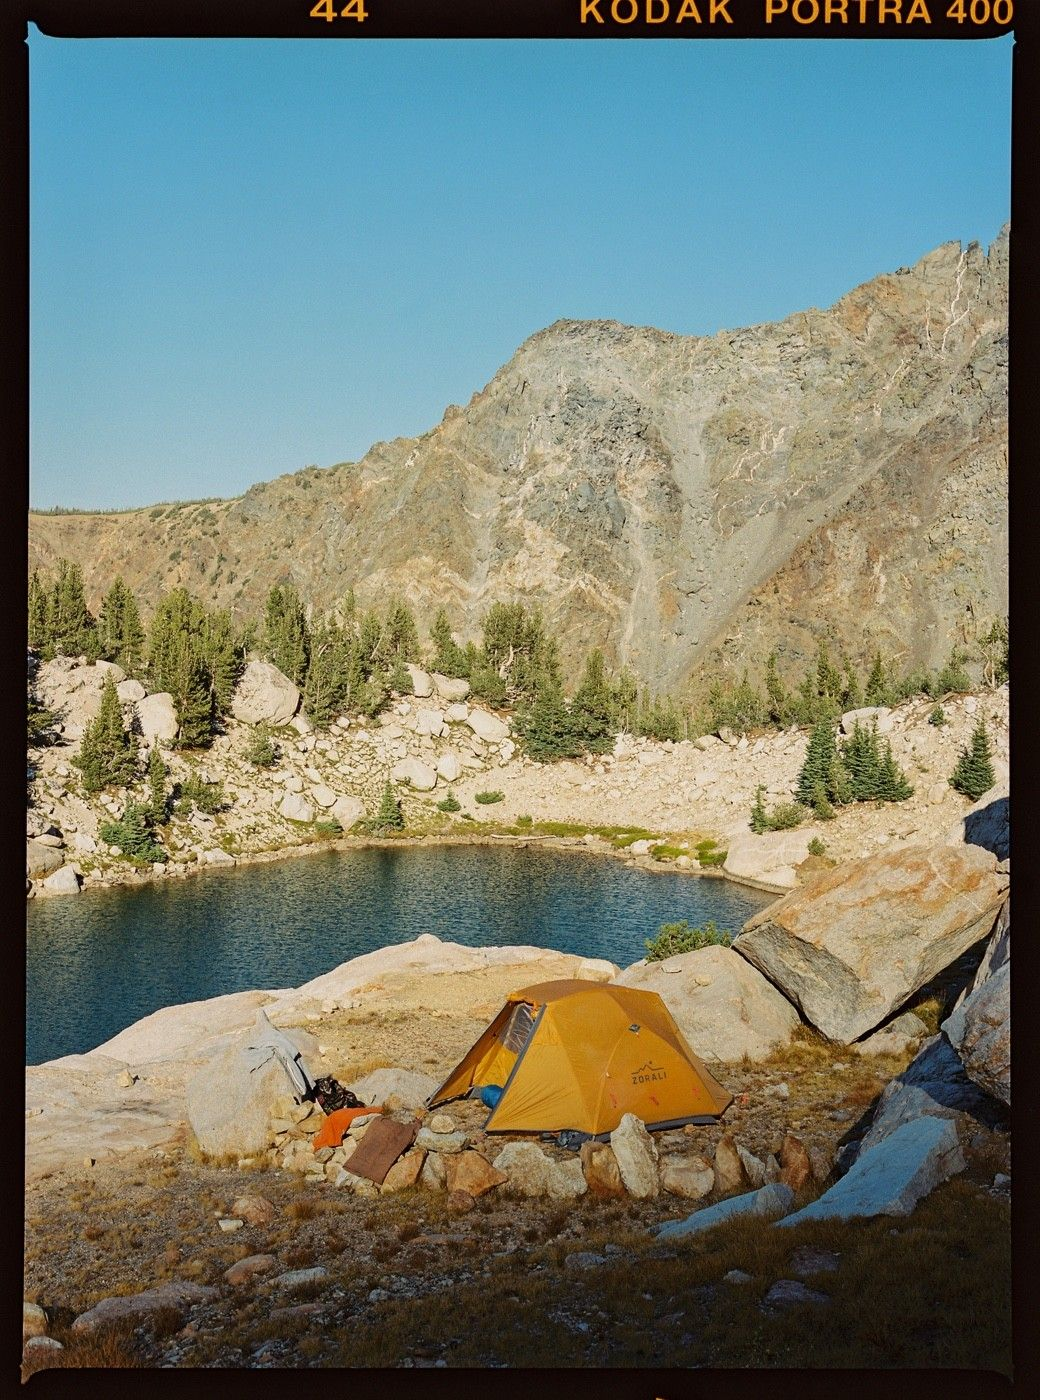 FRAME 12 — Camp for the night, nestled into a cliff edge overlooking an alpine lake. Not too shabby.